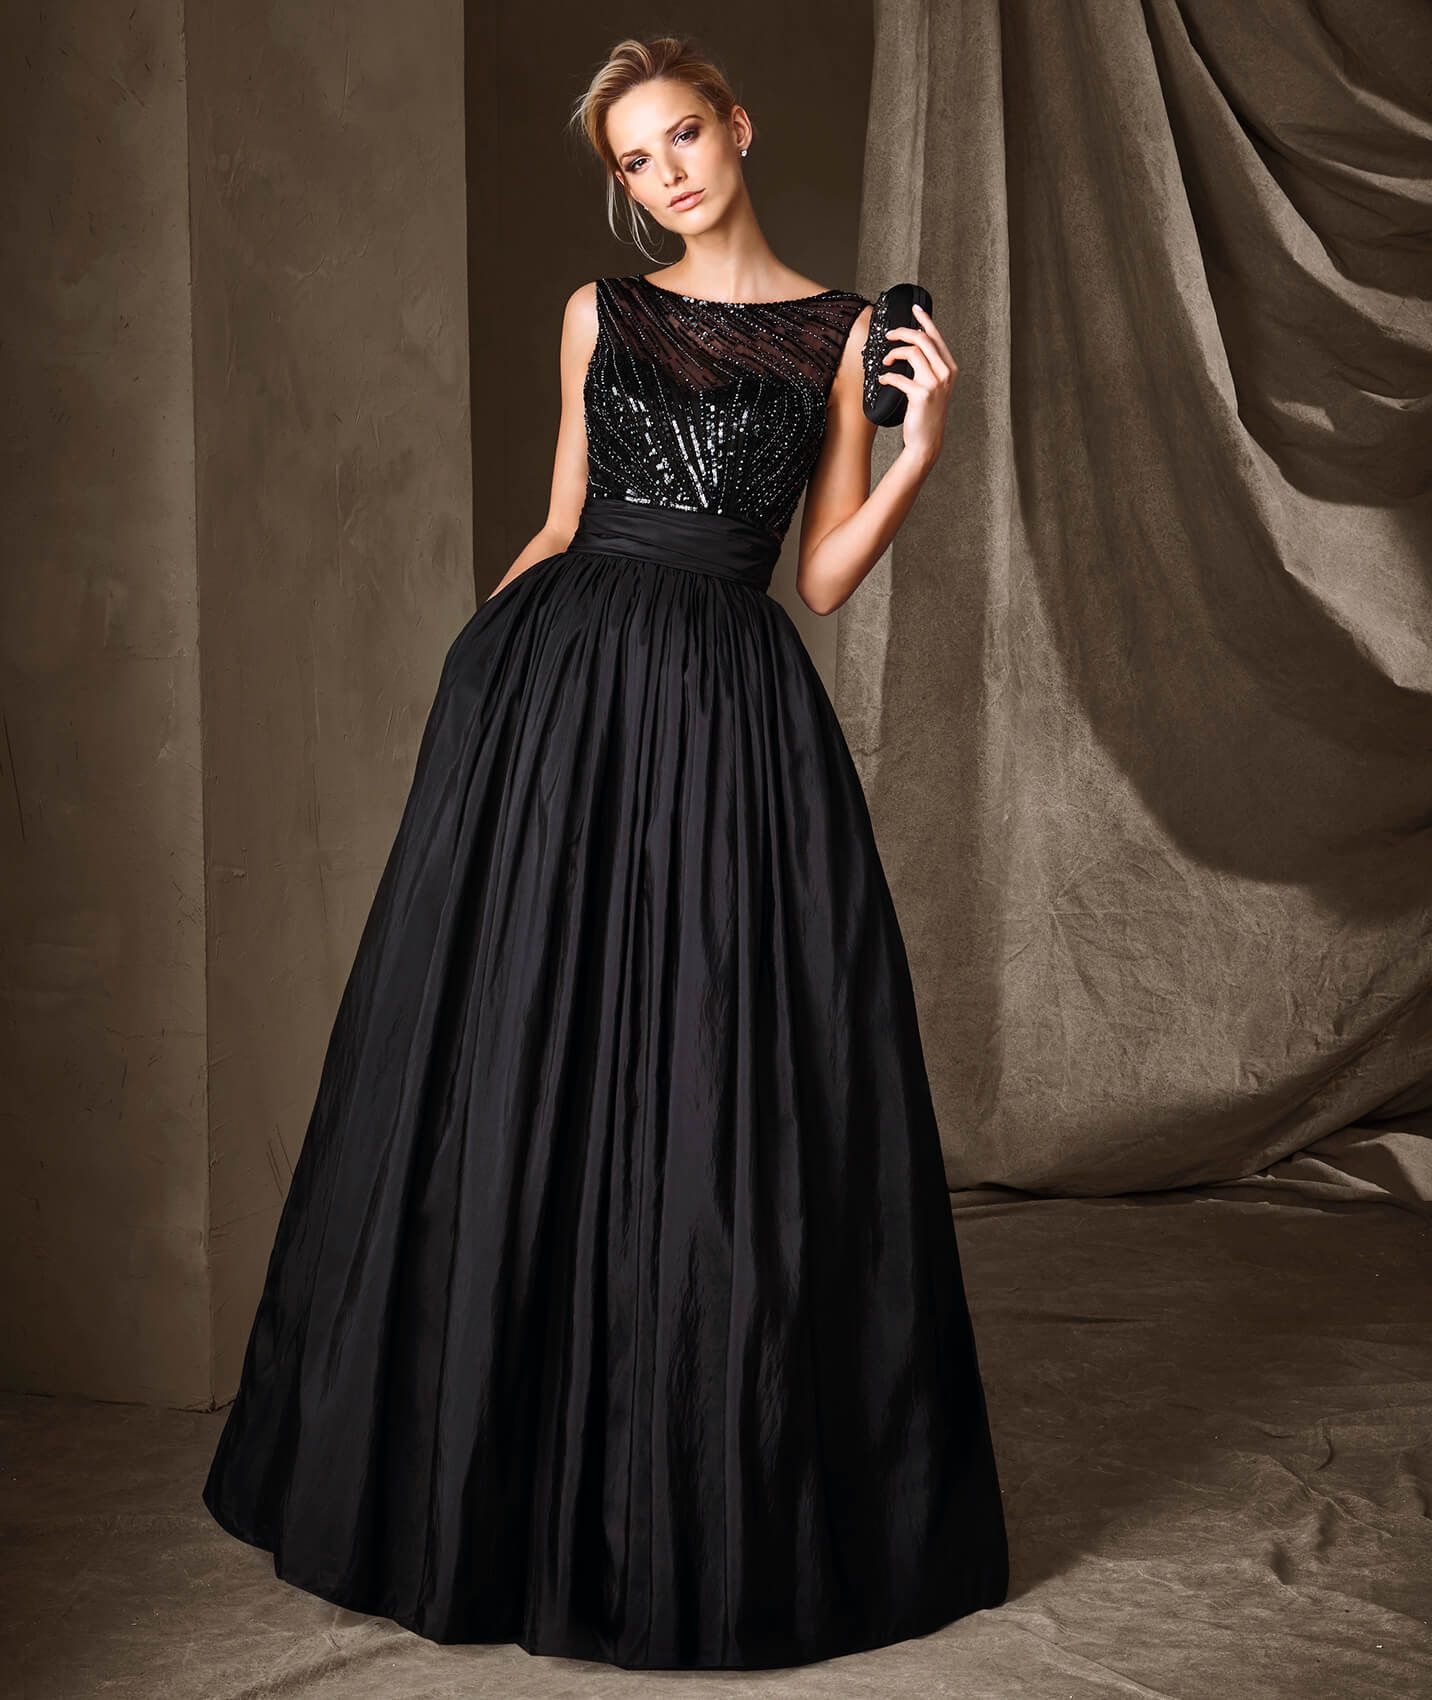 Aristocratic, long princess-style dress. A dress with a bateau ...